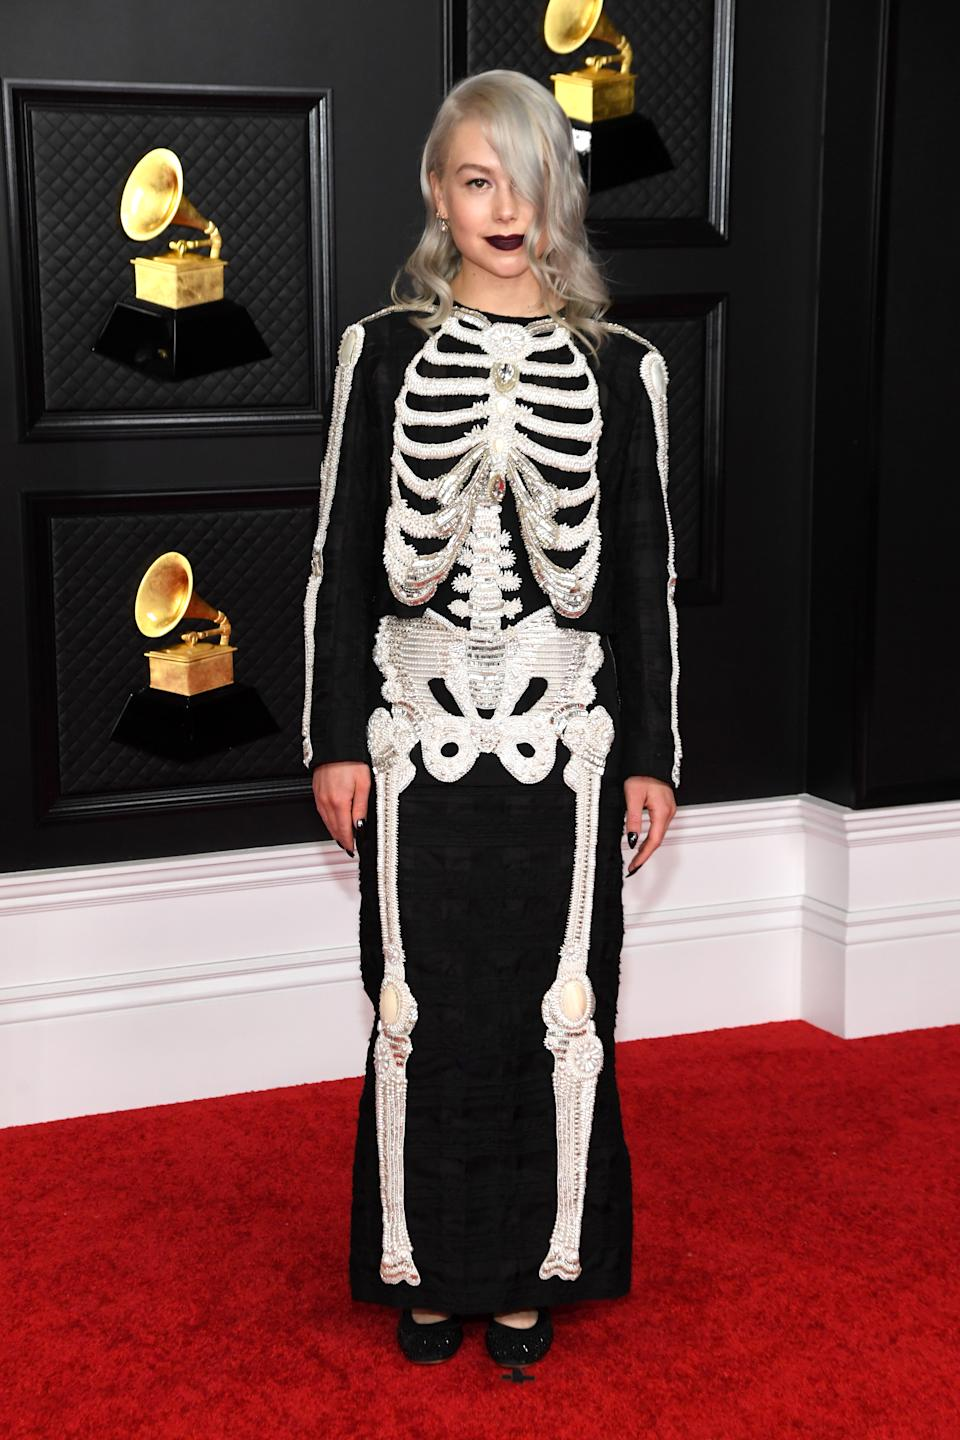 LOS ANGELES, CALIFORNIA - MARCH 14: Phoebe Bridgers attends the 63rd Annual GRAMMY Awards at Los Angeles Convention Center on March 14, 2021 in Los Angeles, California. (Photo by Kevin Mazur/Getty Images for The Recording Academy )